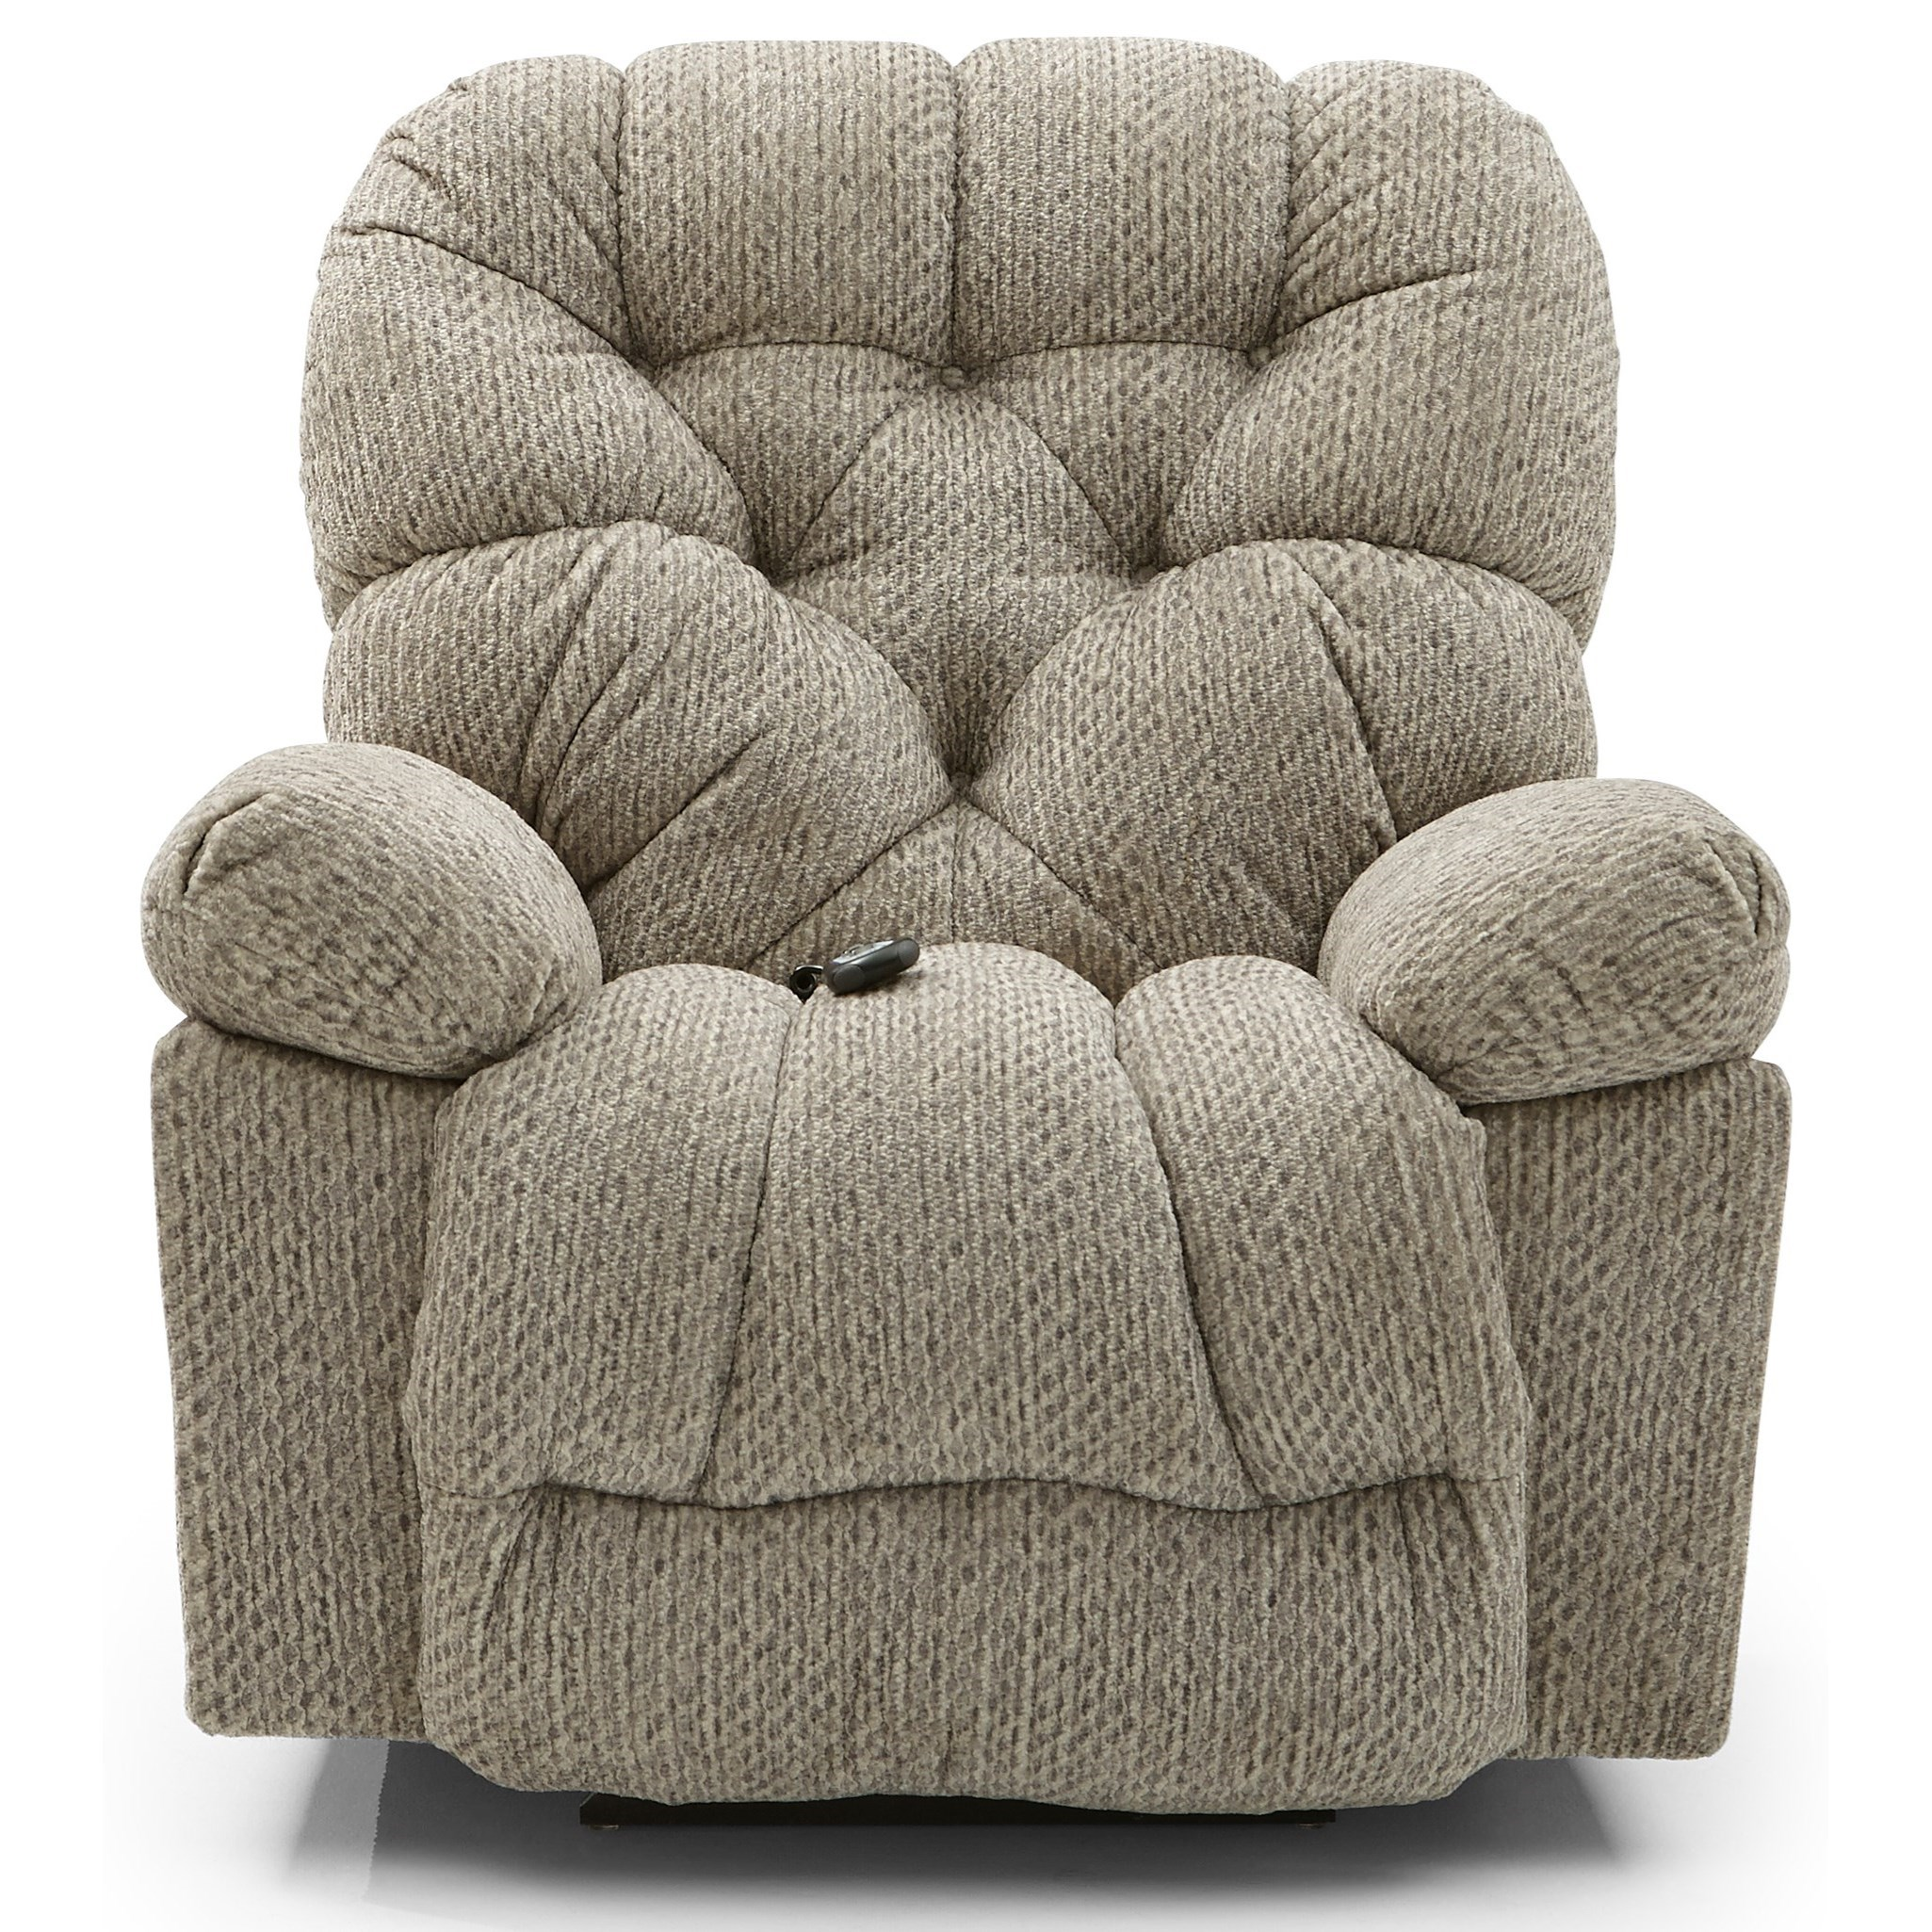 Bolt Rocker Recliner by Best Home Furnishings at Baer's Furniture